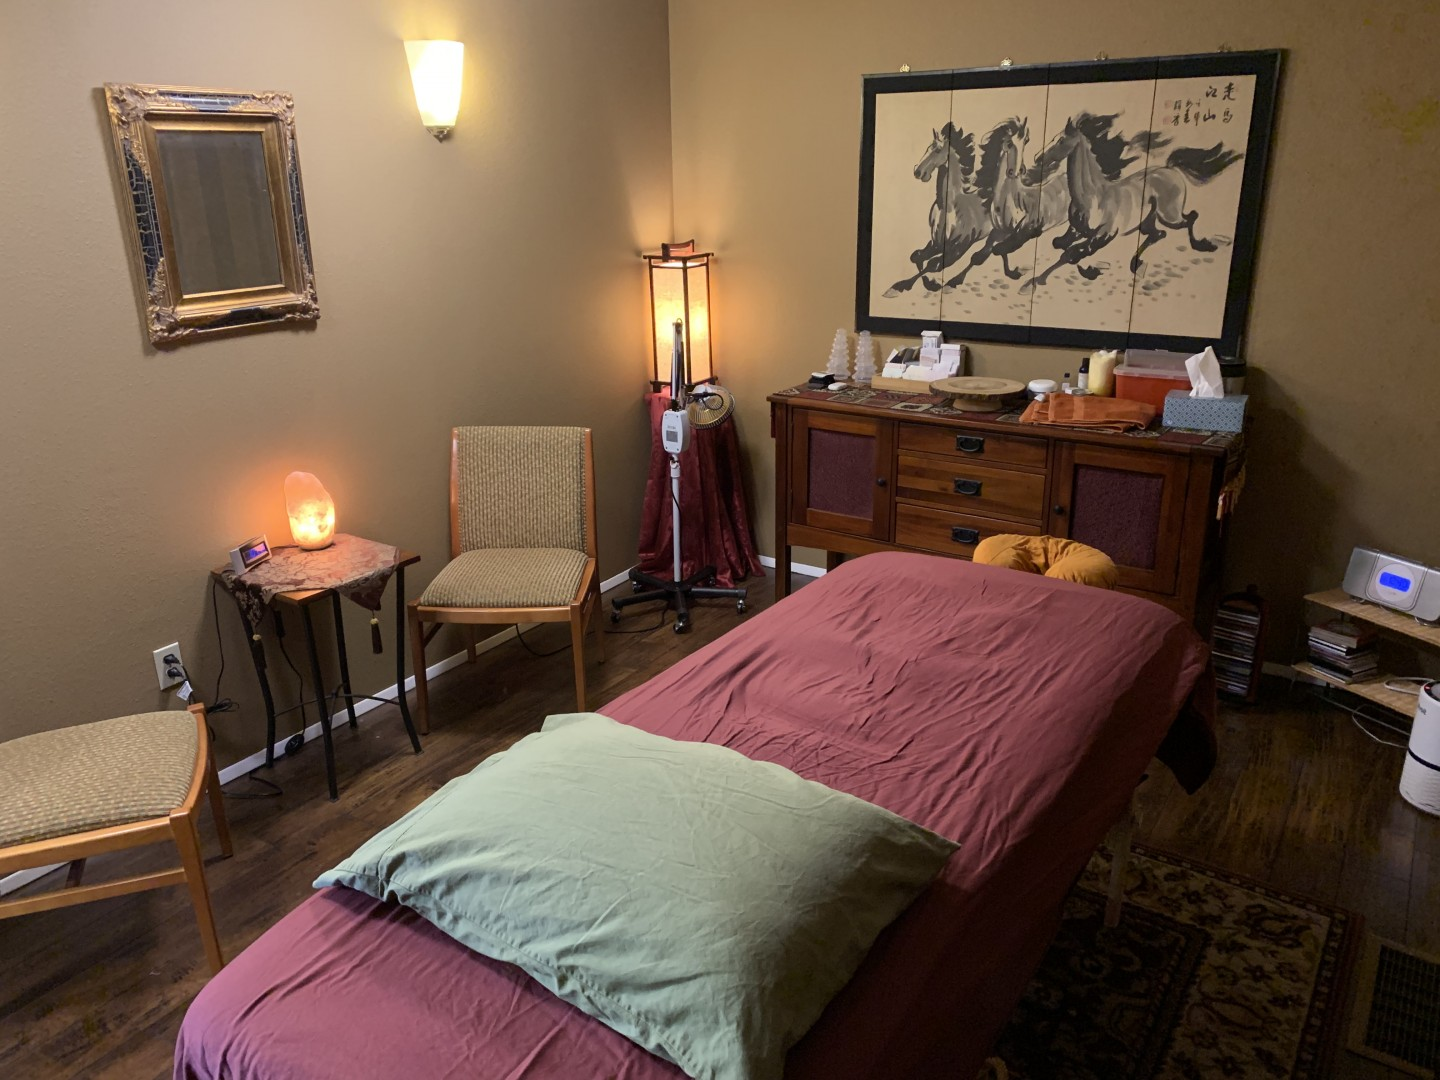 Andrew Wildwood offers Acupuncture in Portland, OR